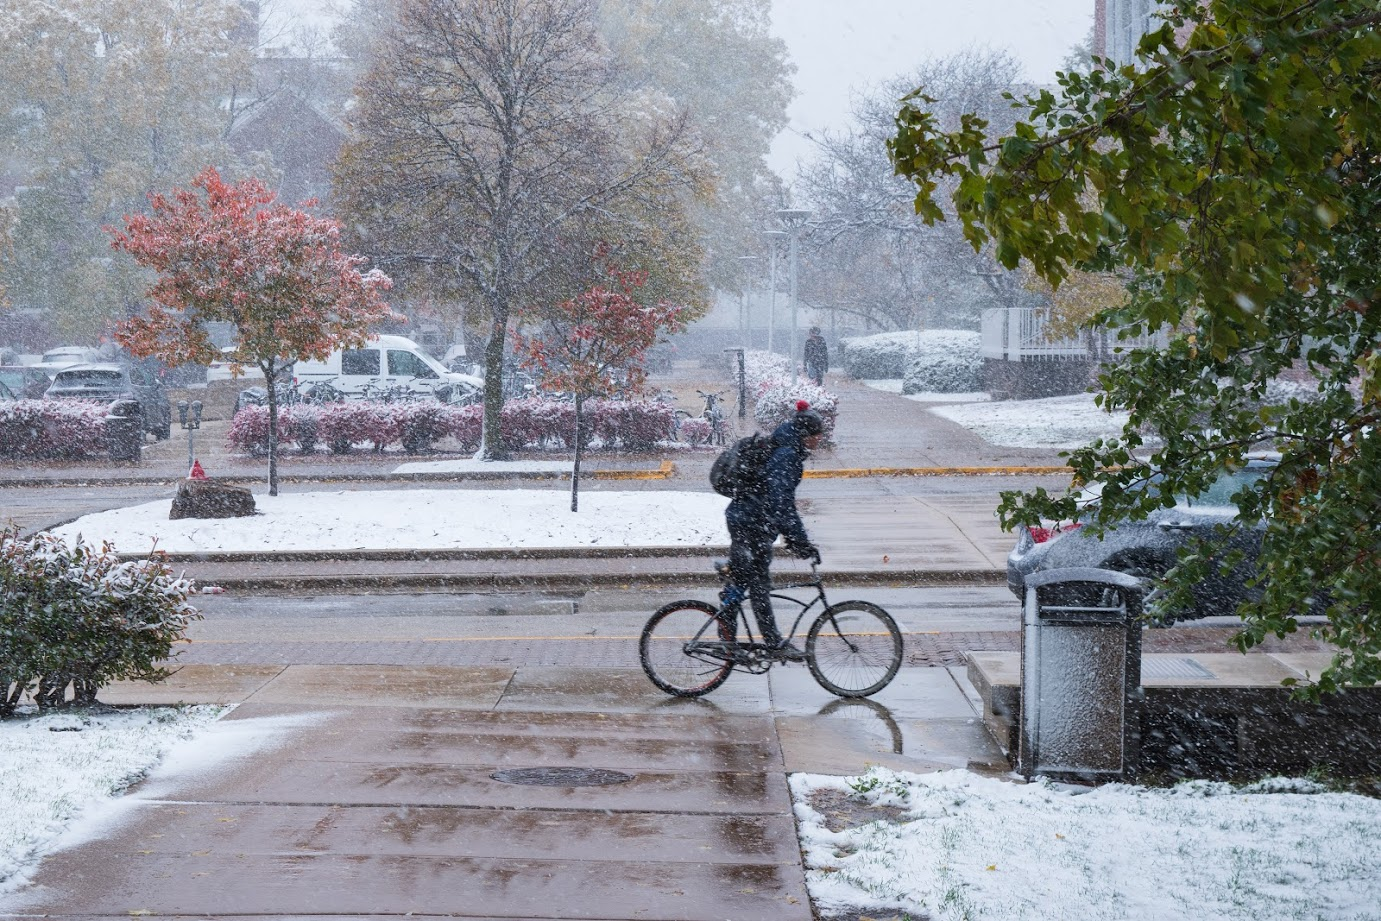 Brigida dockus The Daily Illini A bike rides along a sidewalk in Champaign on Oct. 31. The Urbana City Council has made efforts to increase the areas where they enforce snow plowing; however, the group has been criticized by the community for not making the operation mandatory citywide.